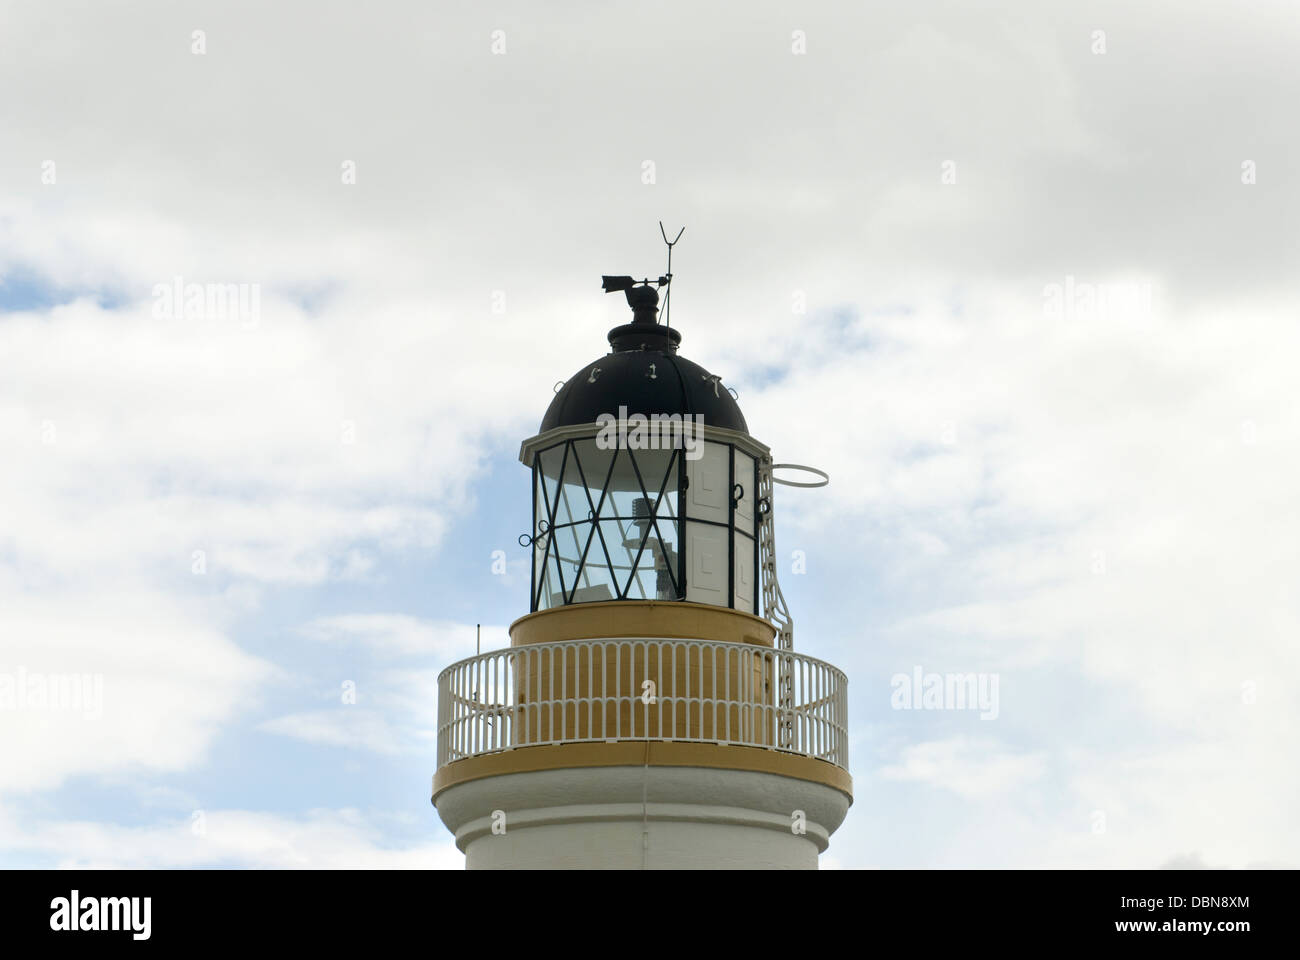 The top of the lighthouse at Chanonry Point on the Black Isle in north Scotland - Stock Image